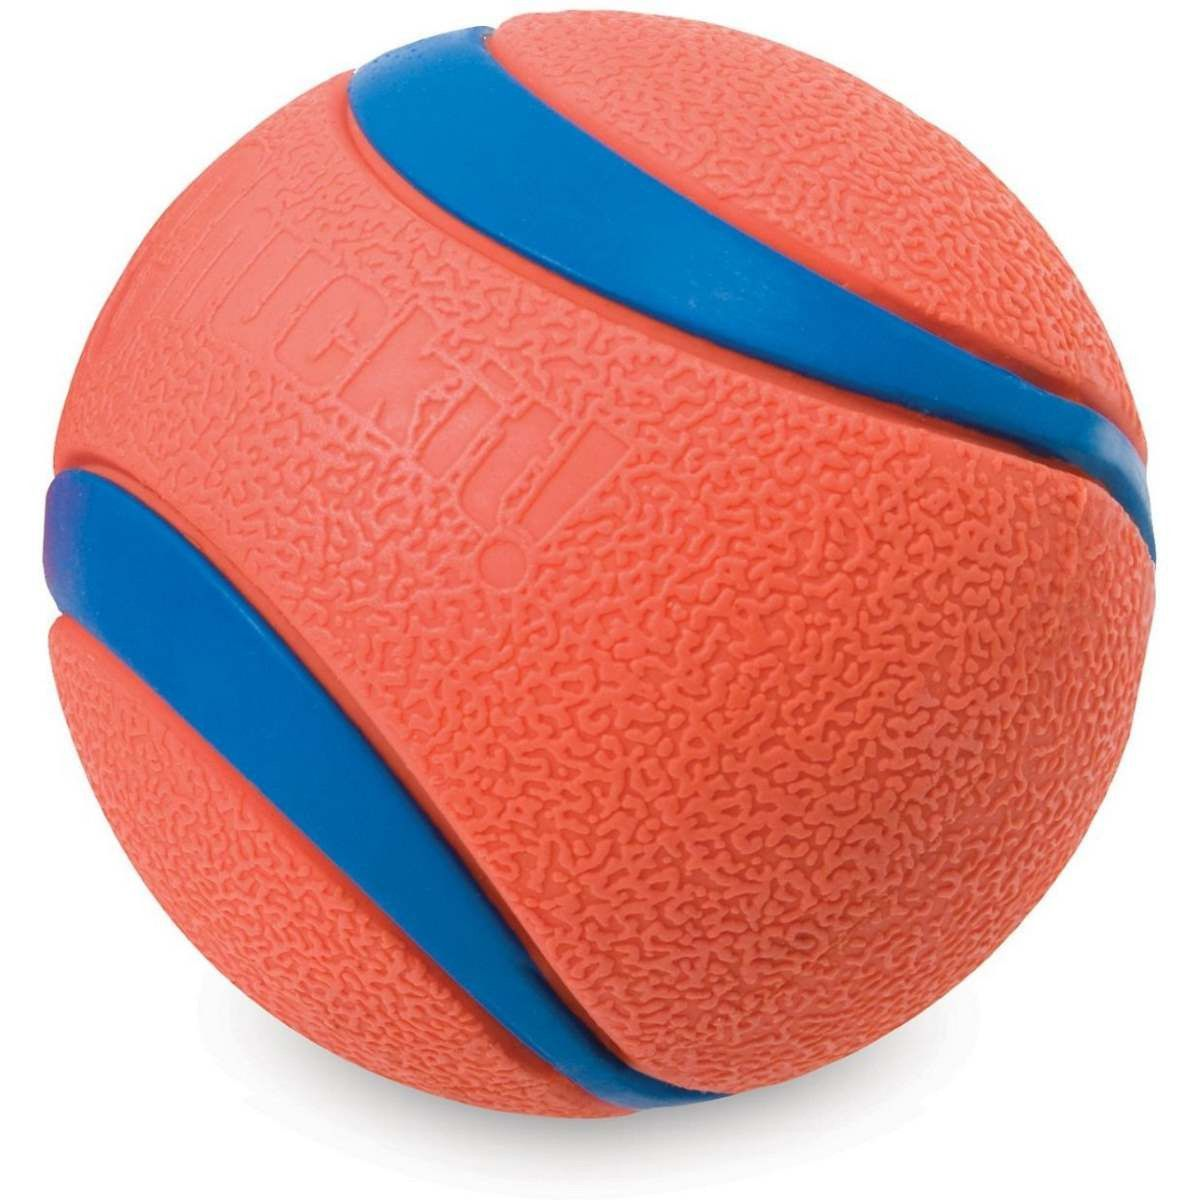 Simply Put This Is The Best Ball For The Game Of Fetch Developed